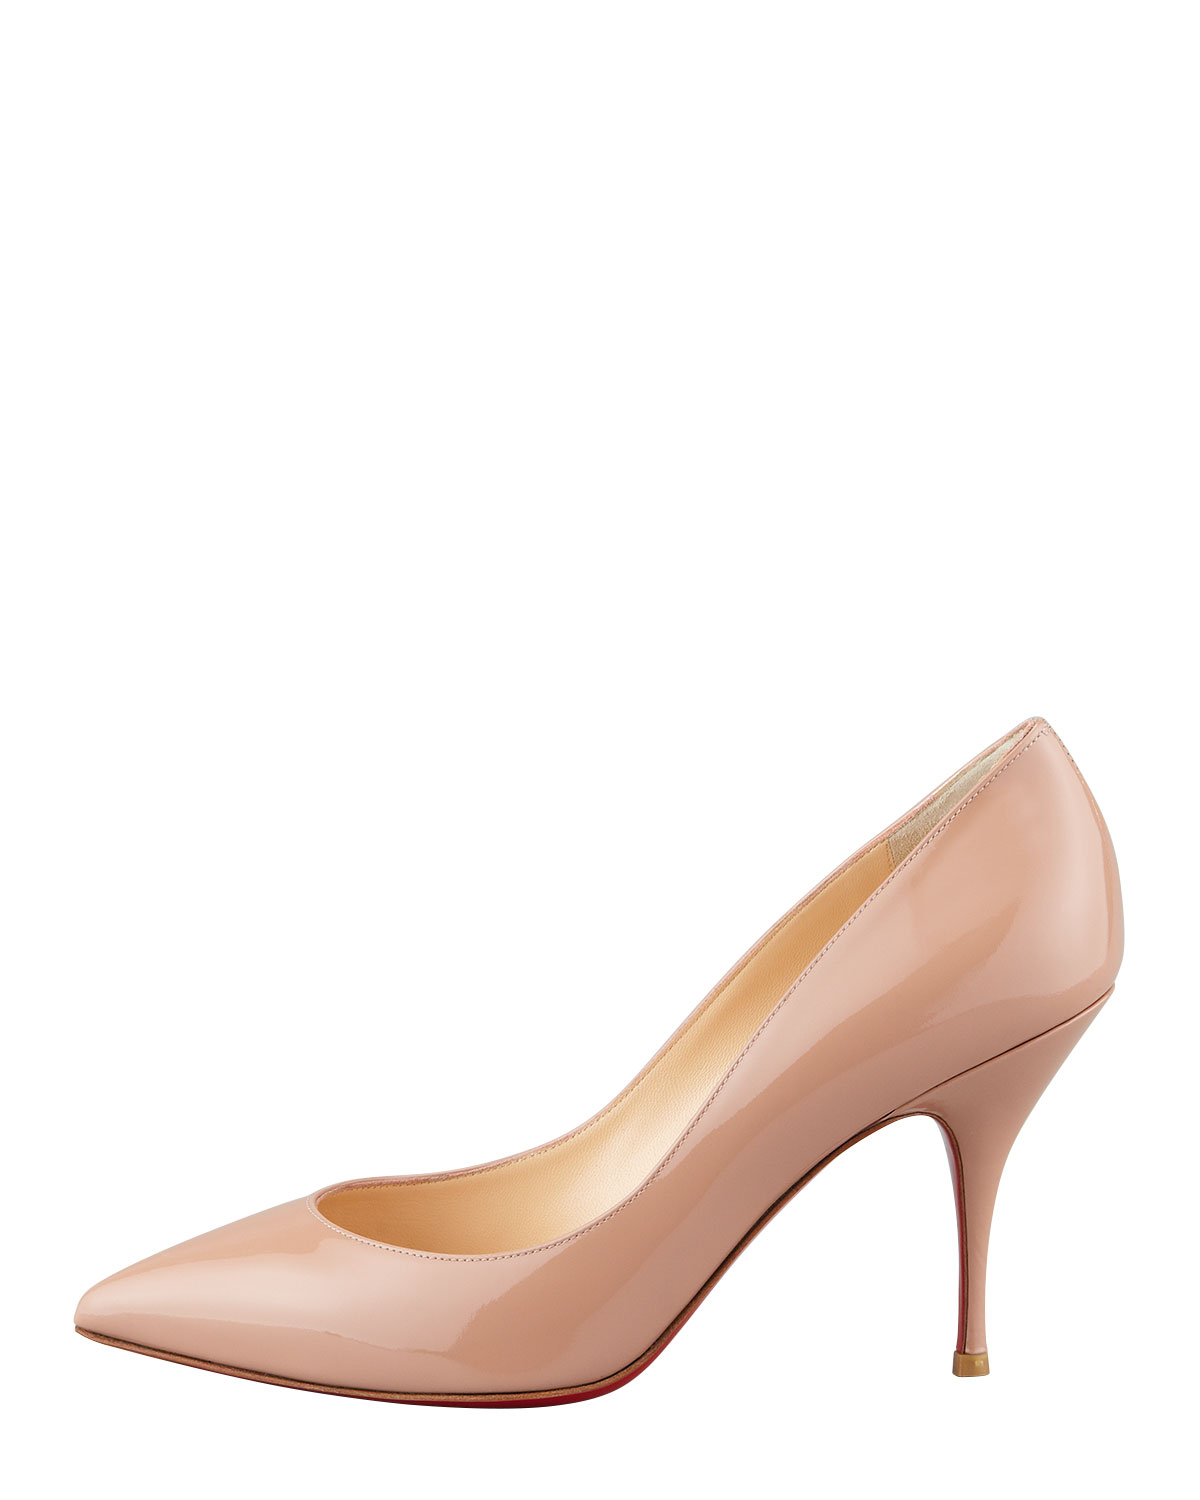 Christian Louboutin Patent Round-Toe Red Sole Pump, Nude